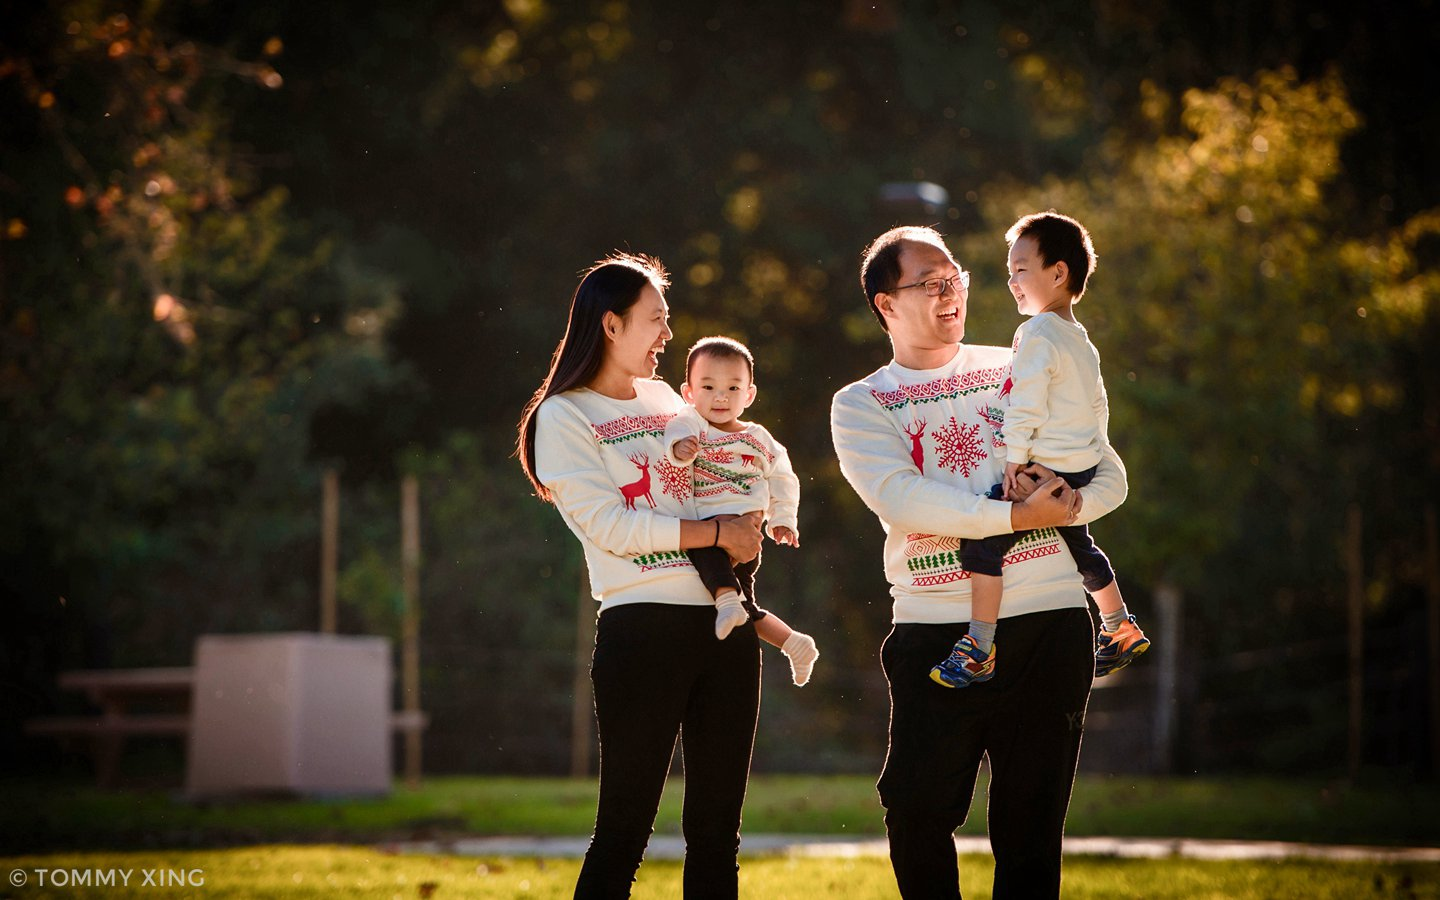 Los Angeles Family Portrait Photographer 洛杉矶家庭摄影师 Tommy Xing  07.jpg